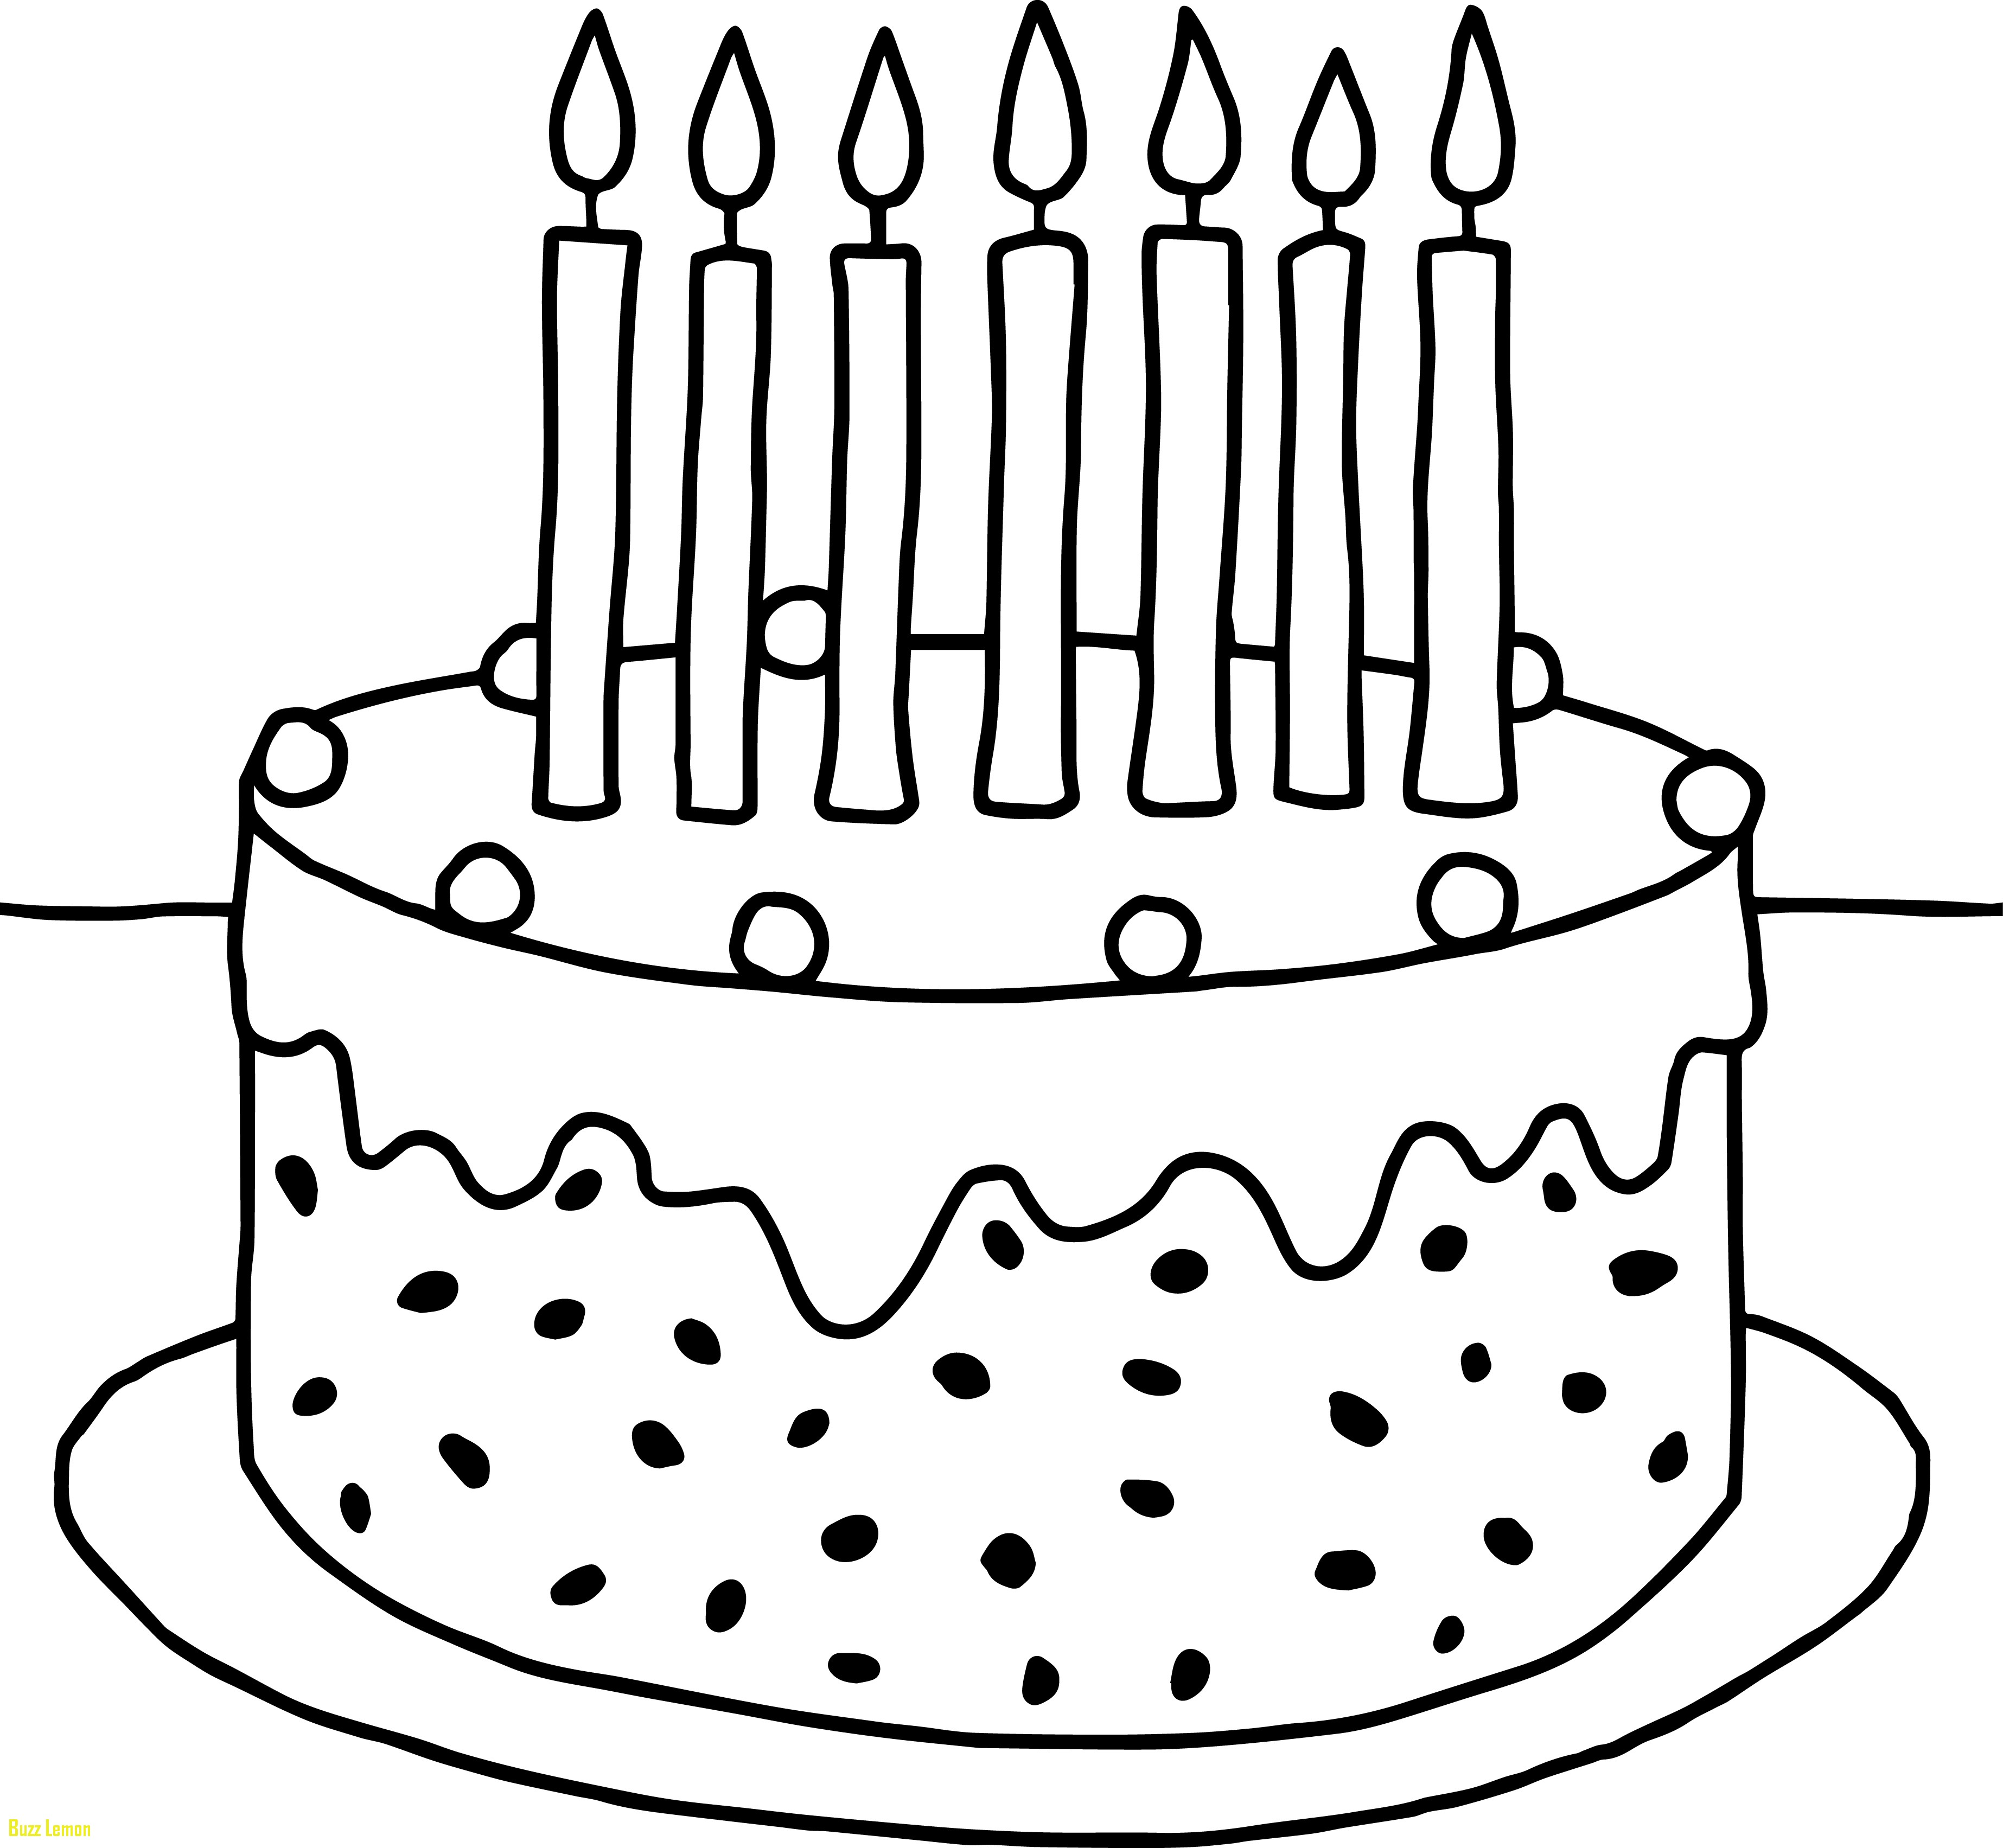 cake coloring image birthday cake coloring pages preschool at getdrawings image cake coloring